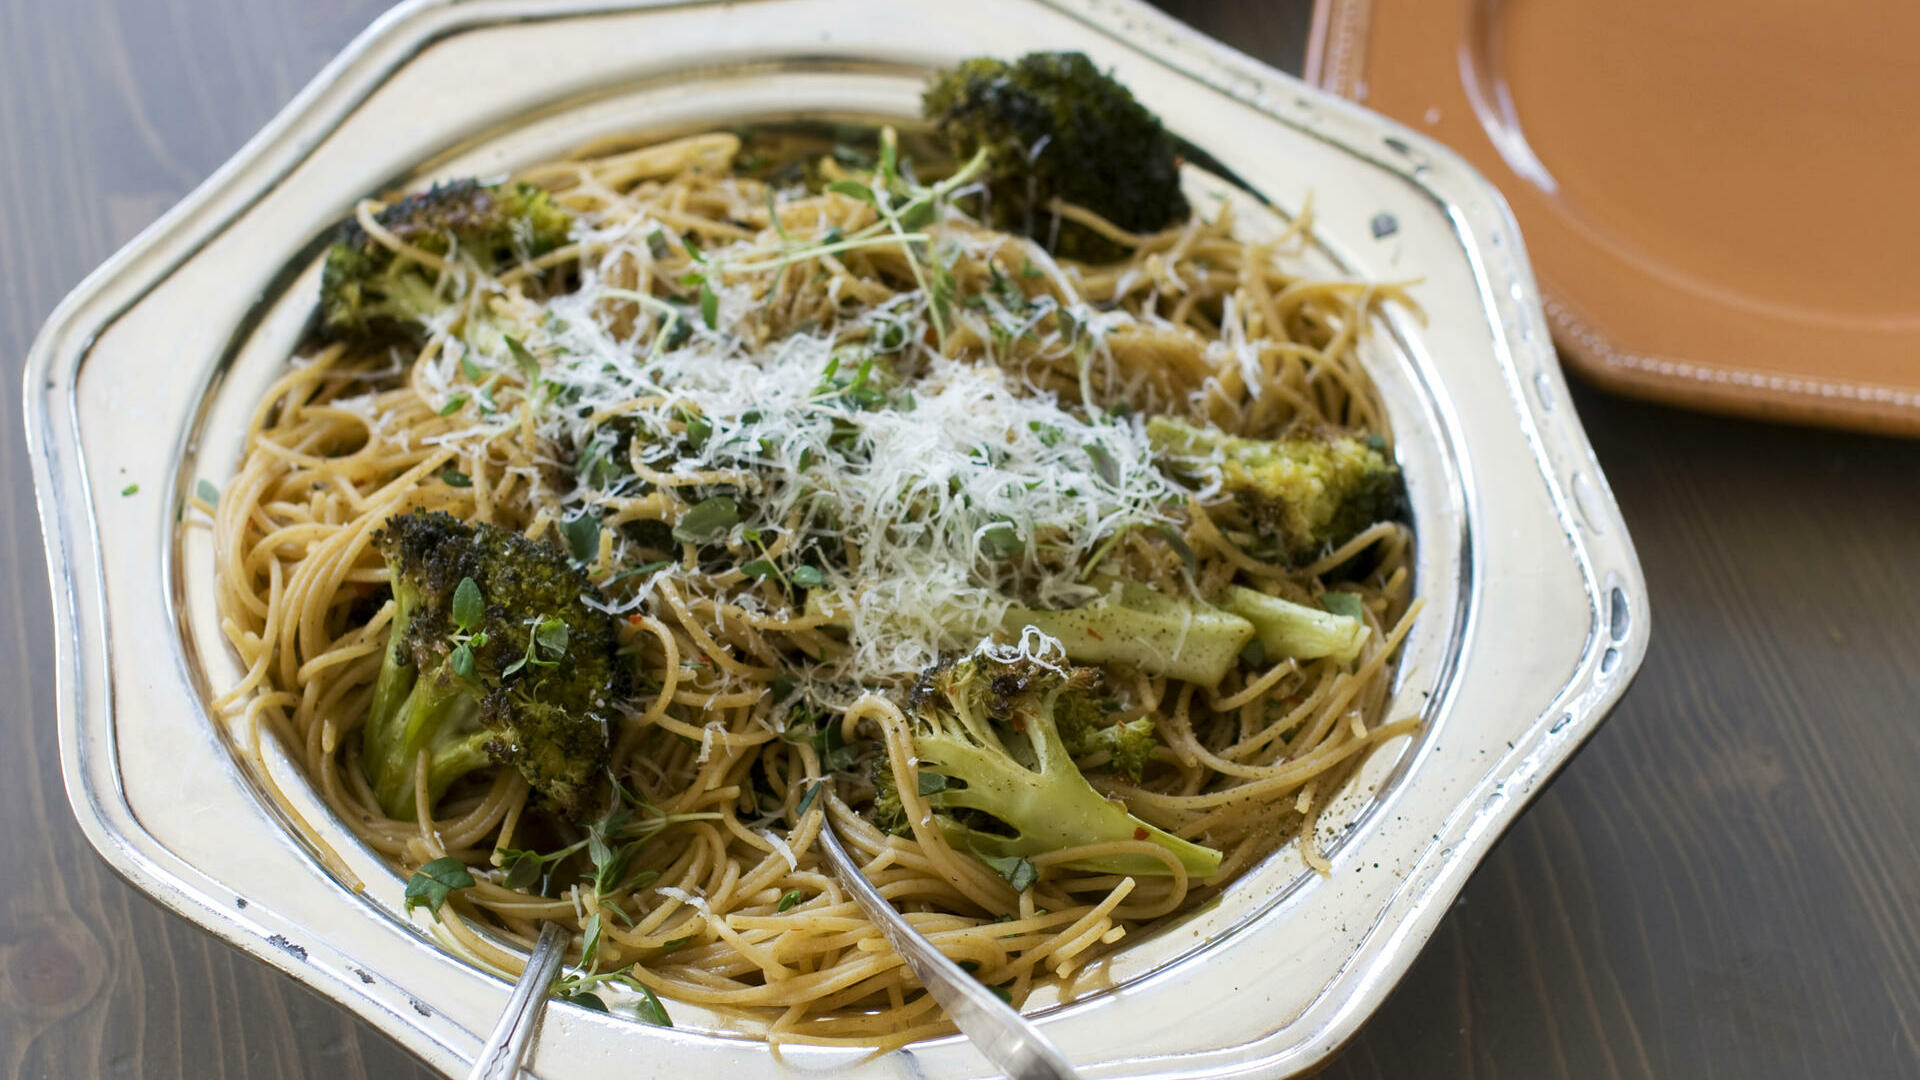 broccoli pasta Quelle: dapd